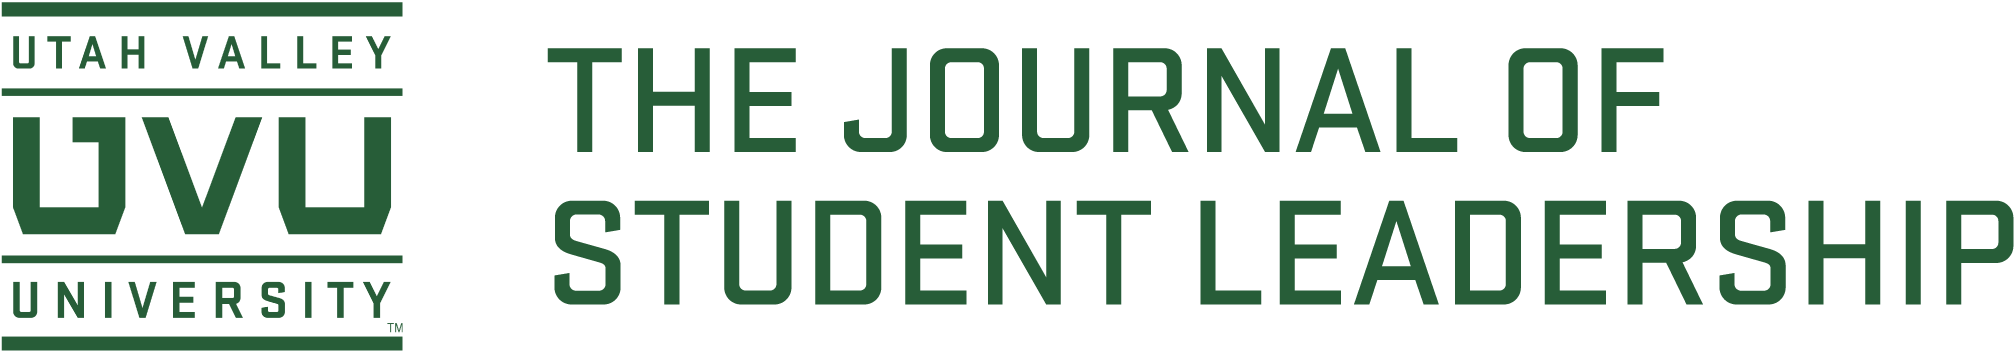 Journal of Student Leadership